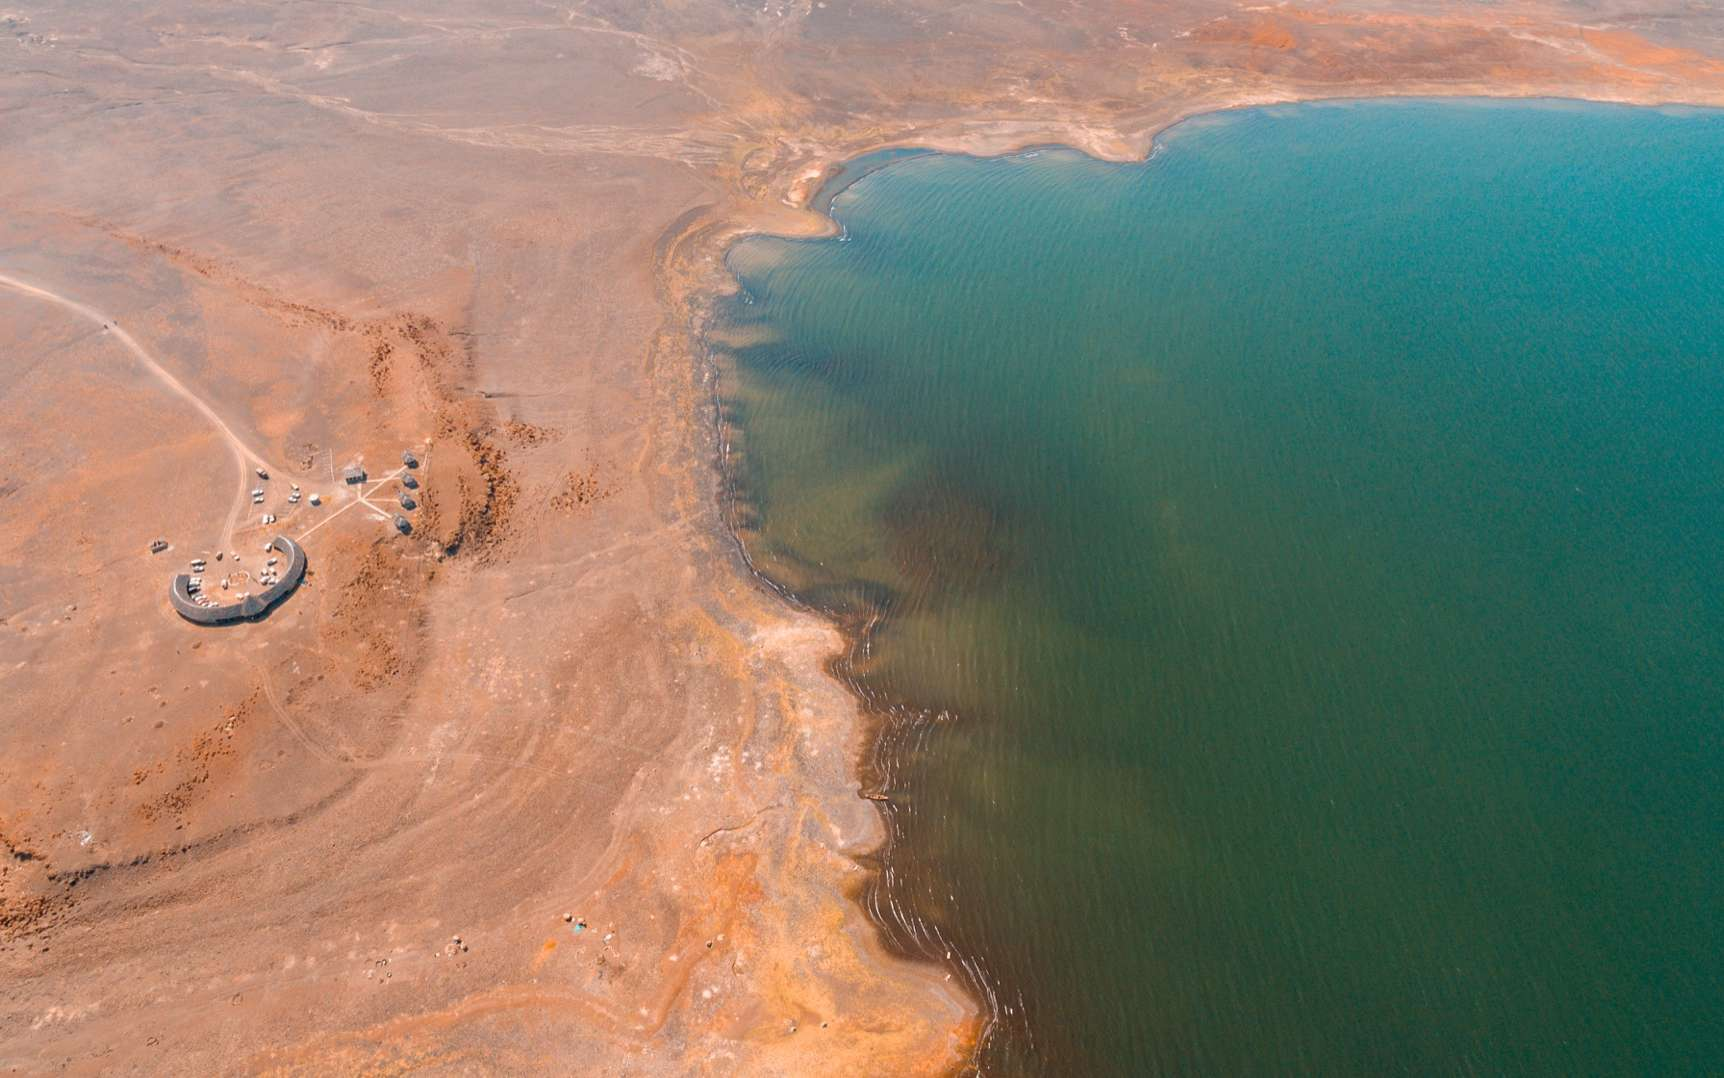 Le lac Turkana, Kenya. © Moiz, Adobe Stock